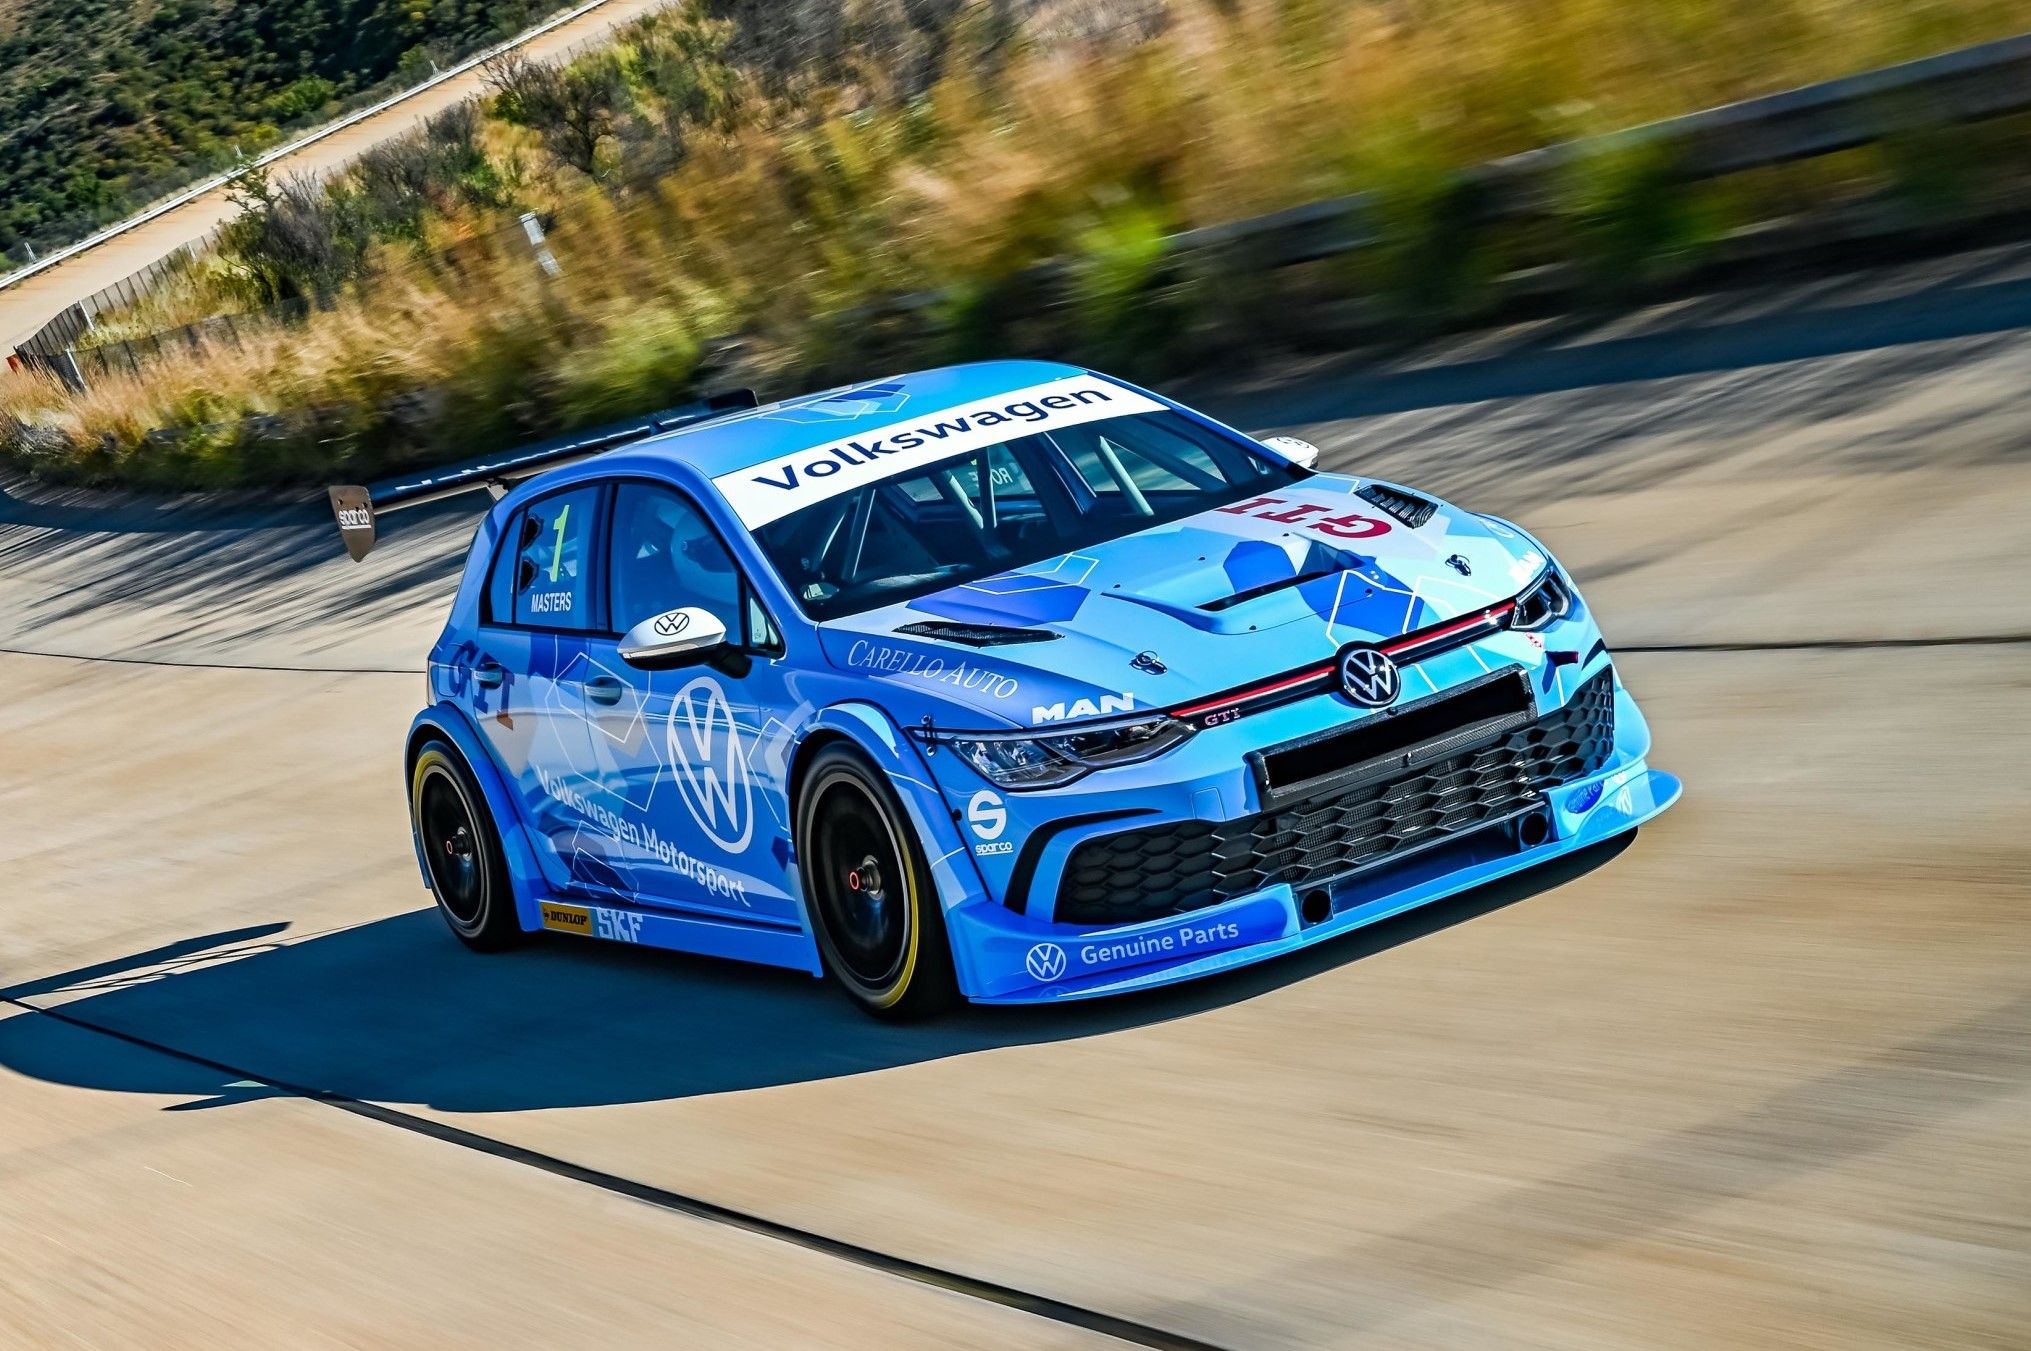 Volkswagen Motorsport South Africa Reveal New Gtc Car Based On Golf 8 Gti Motorsport Volkswagen Gti